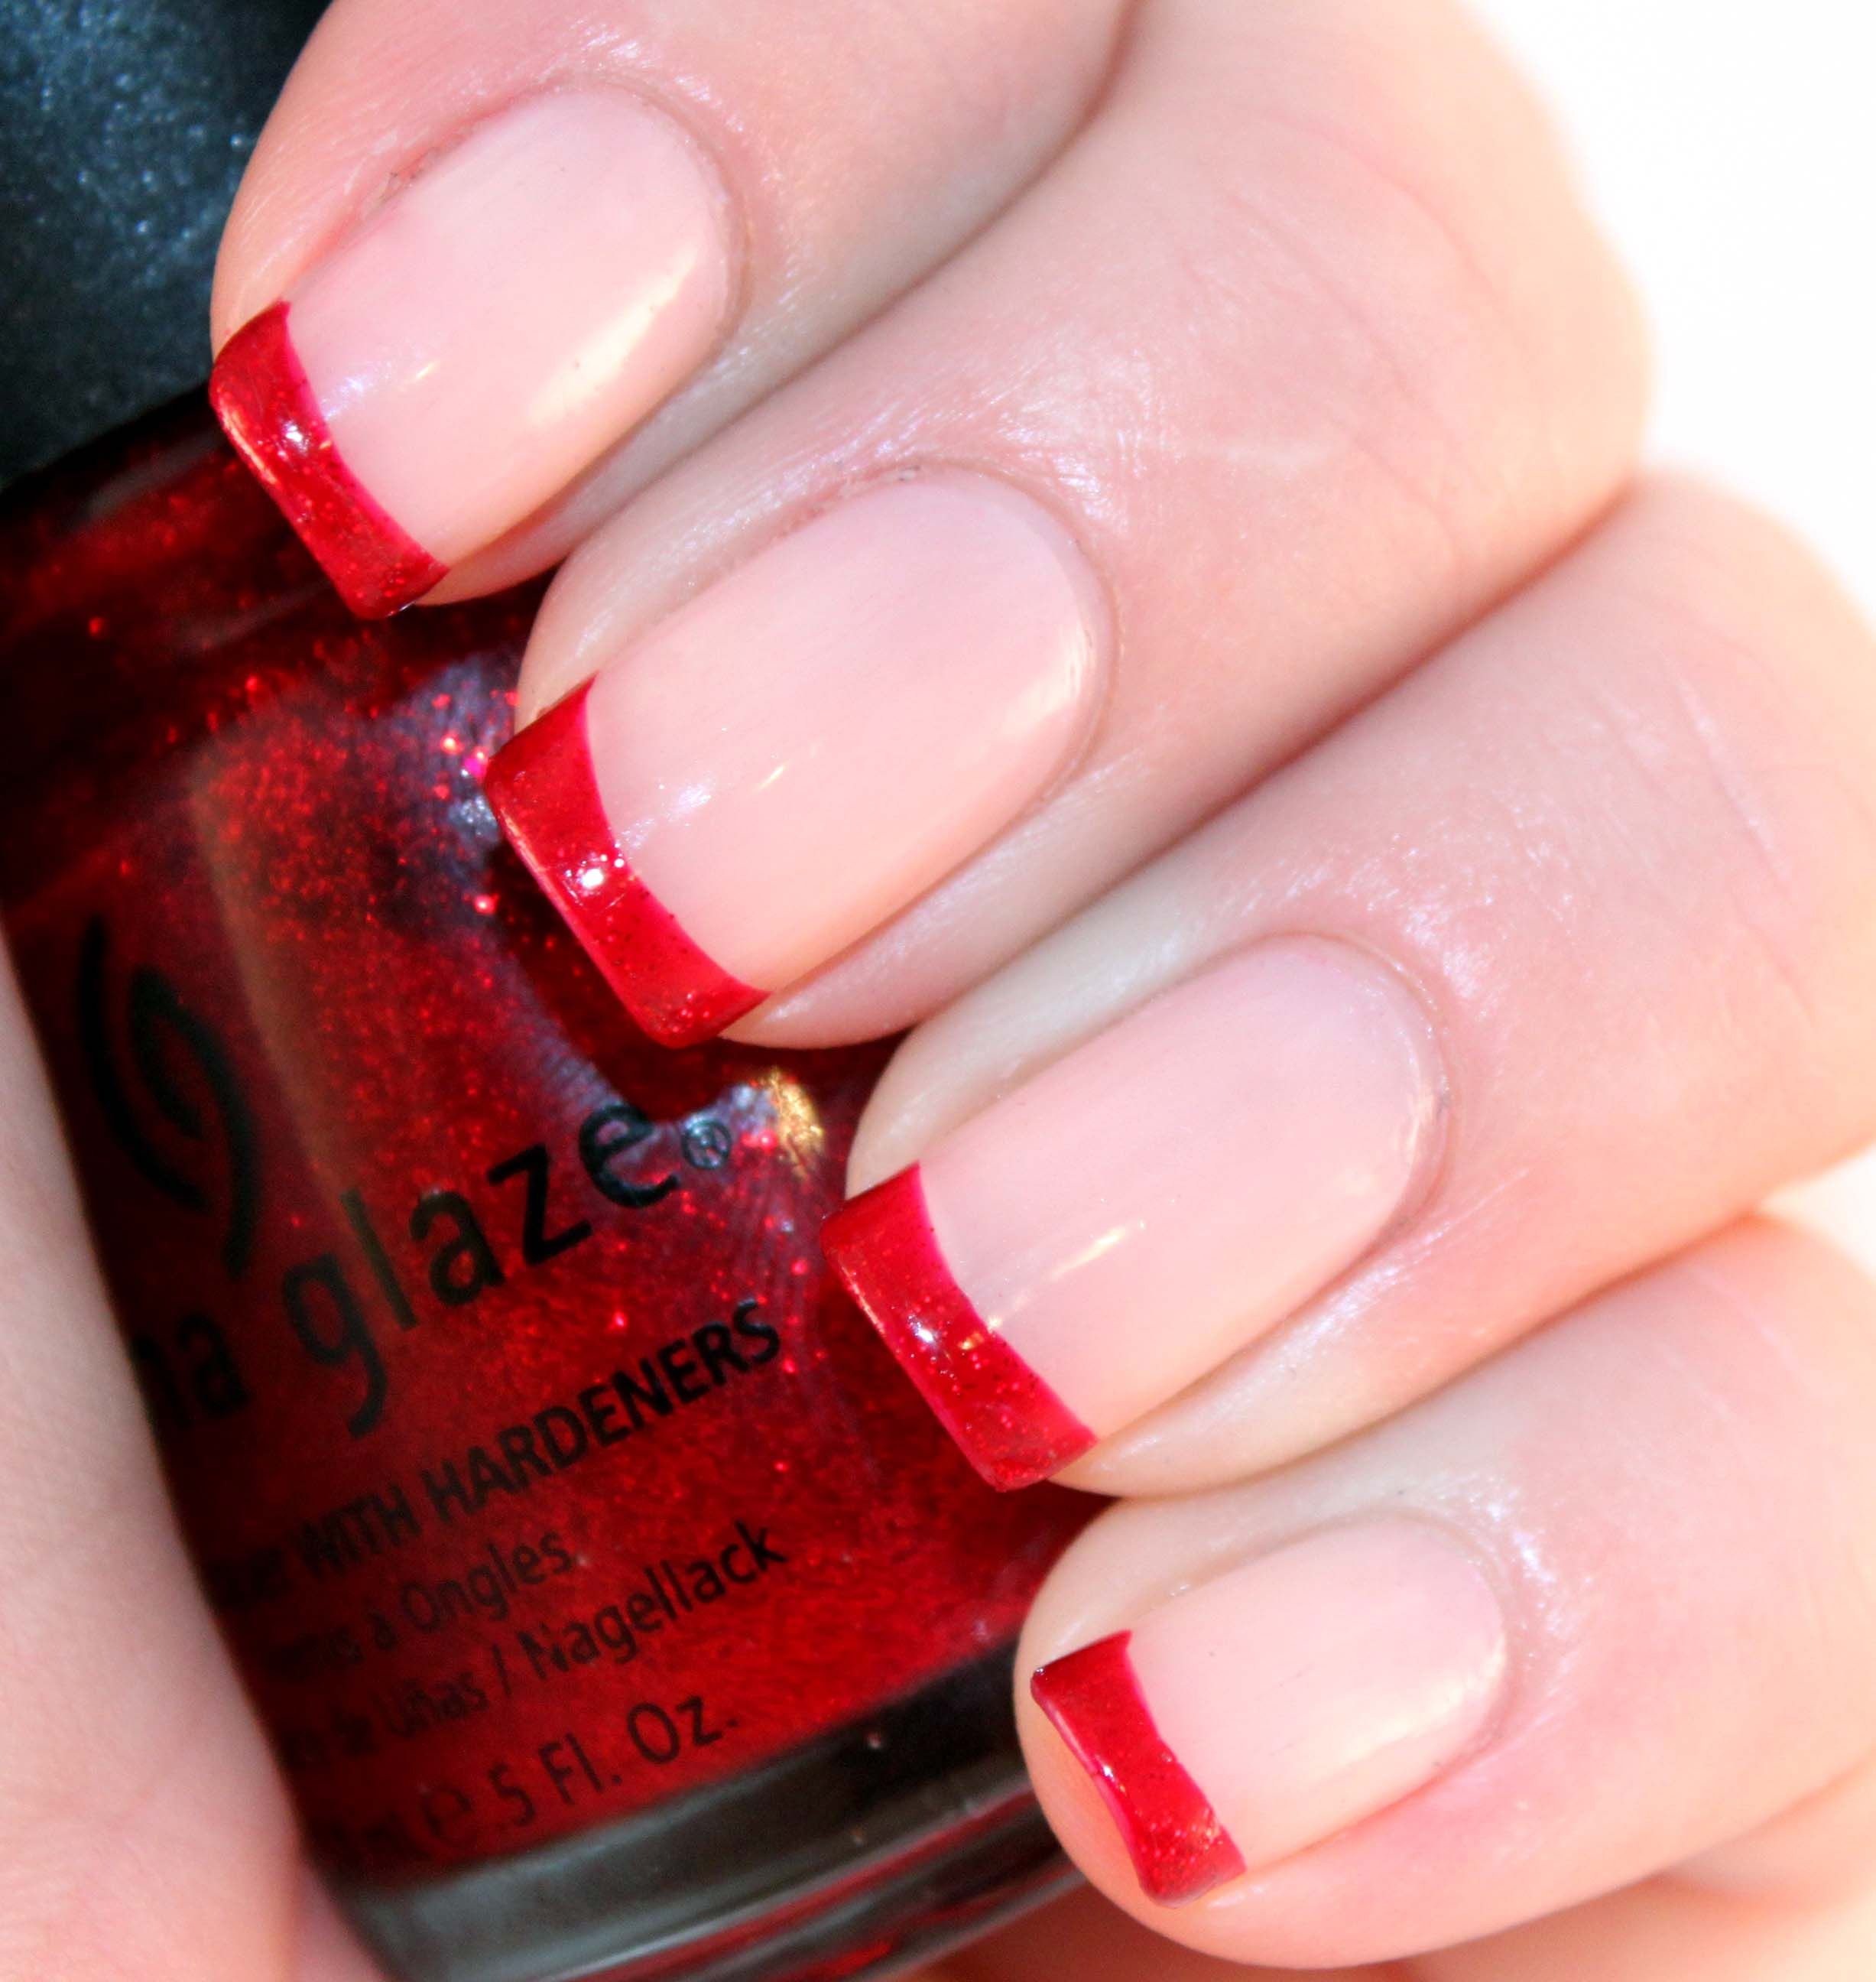 Pin By Elizabeth Sanders On Maquillage Et Ongles French Tip Gel Nails Red French Manicure French Tip Nails